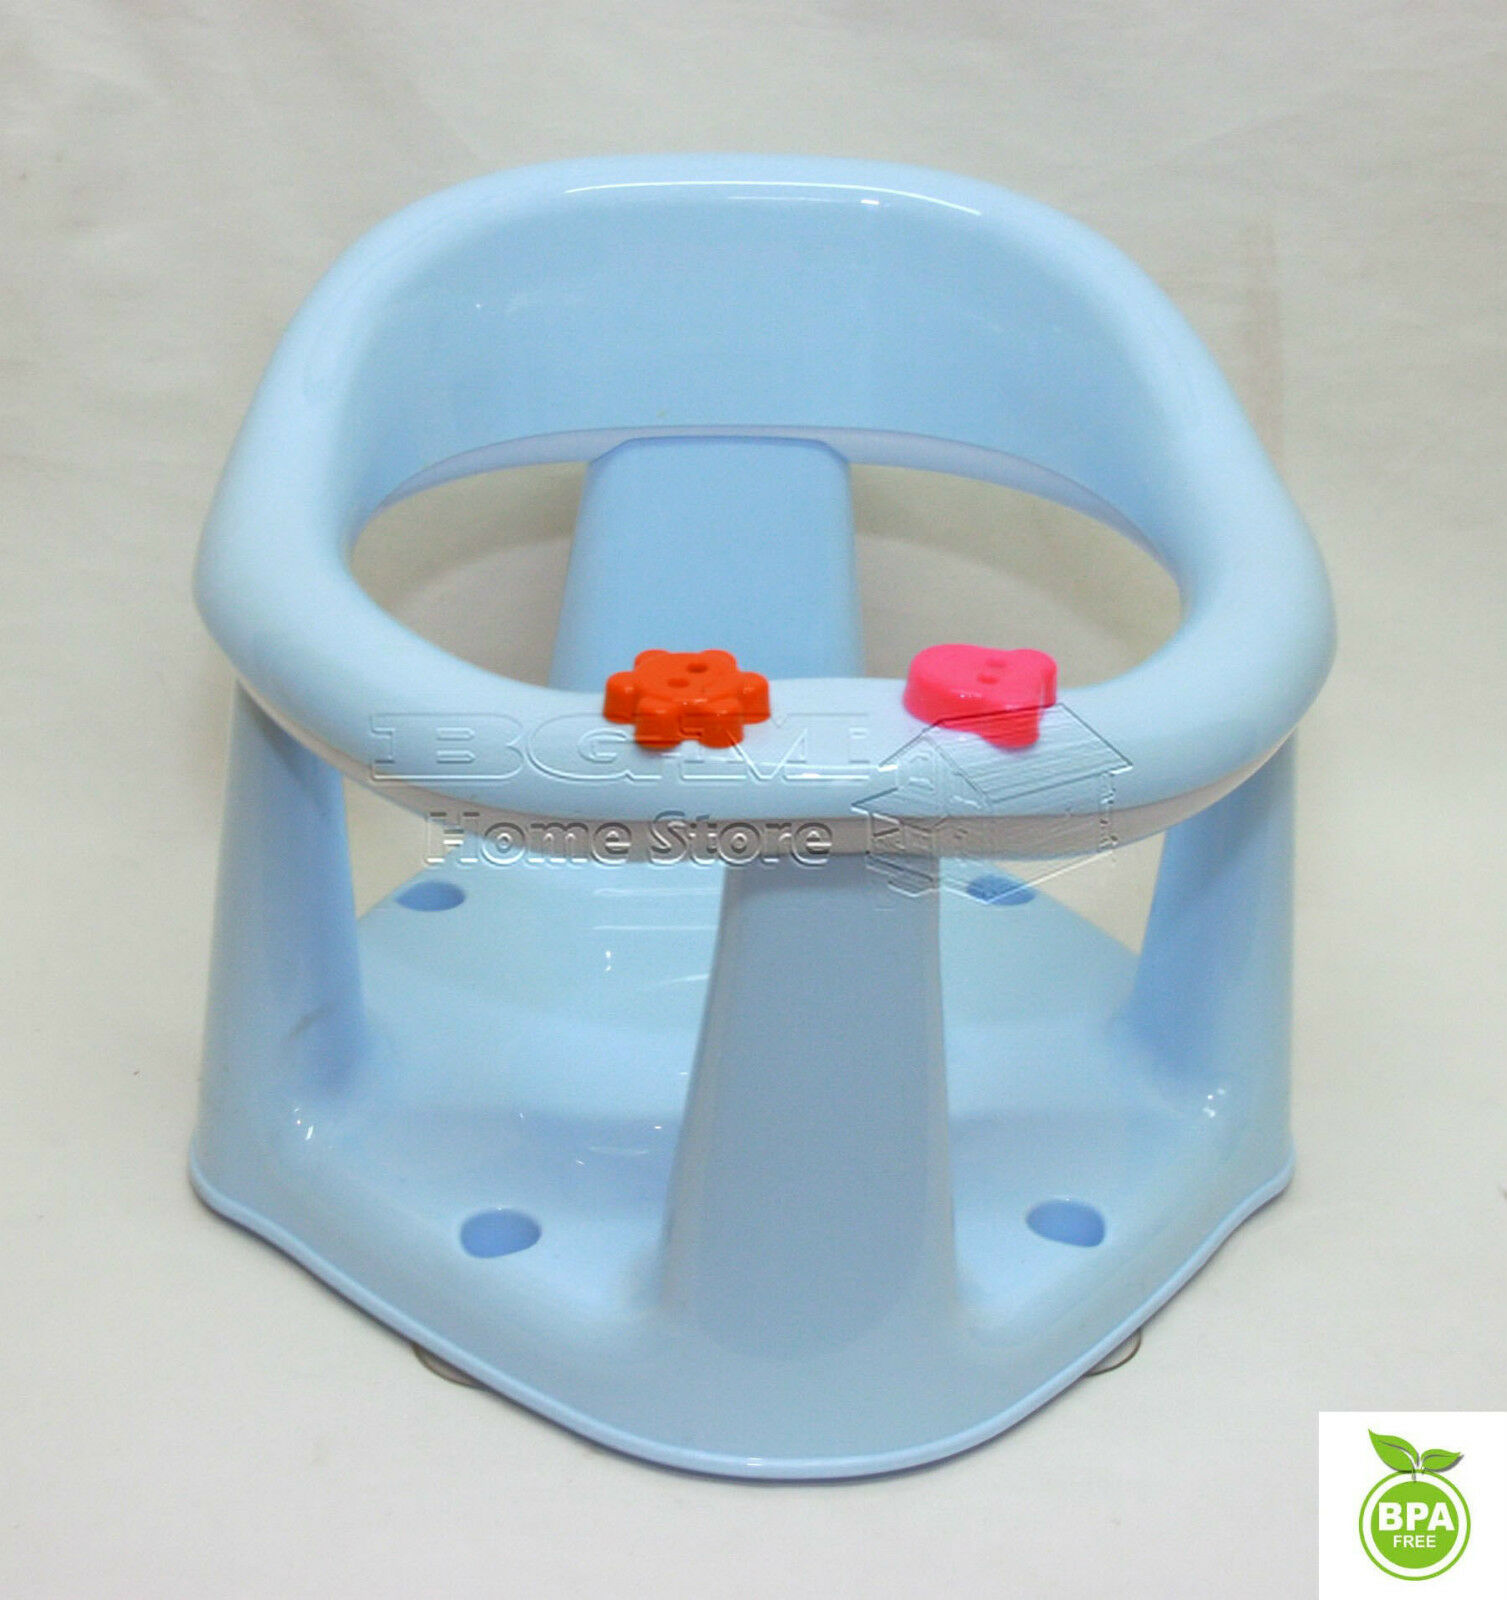 Baby Bath Seats & Supports , Baby Bathing/Grooming , Baby